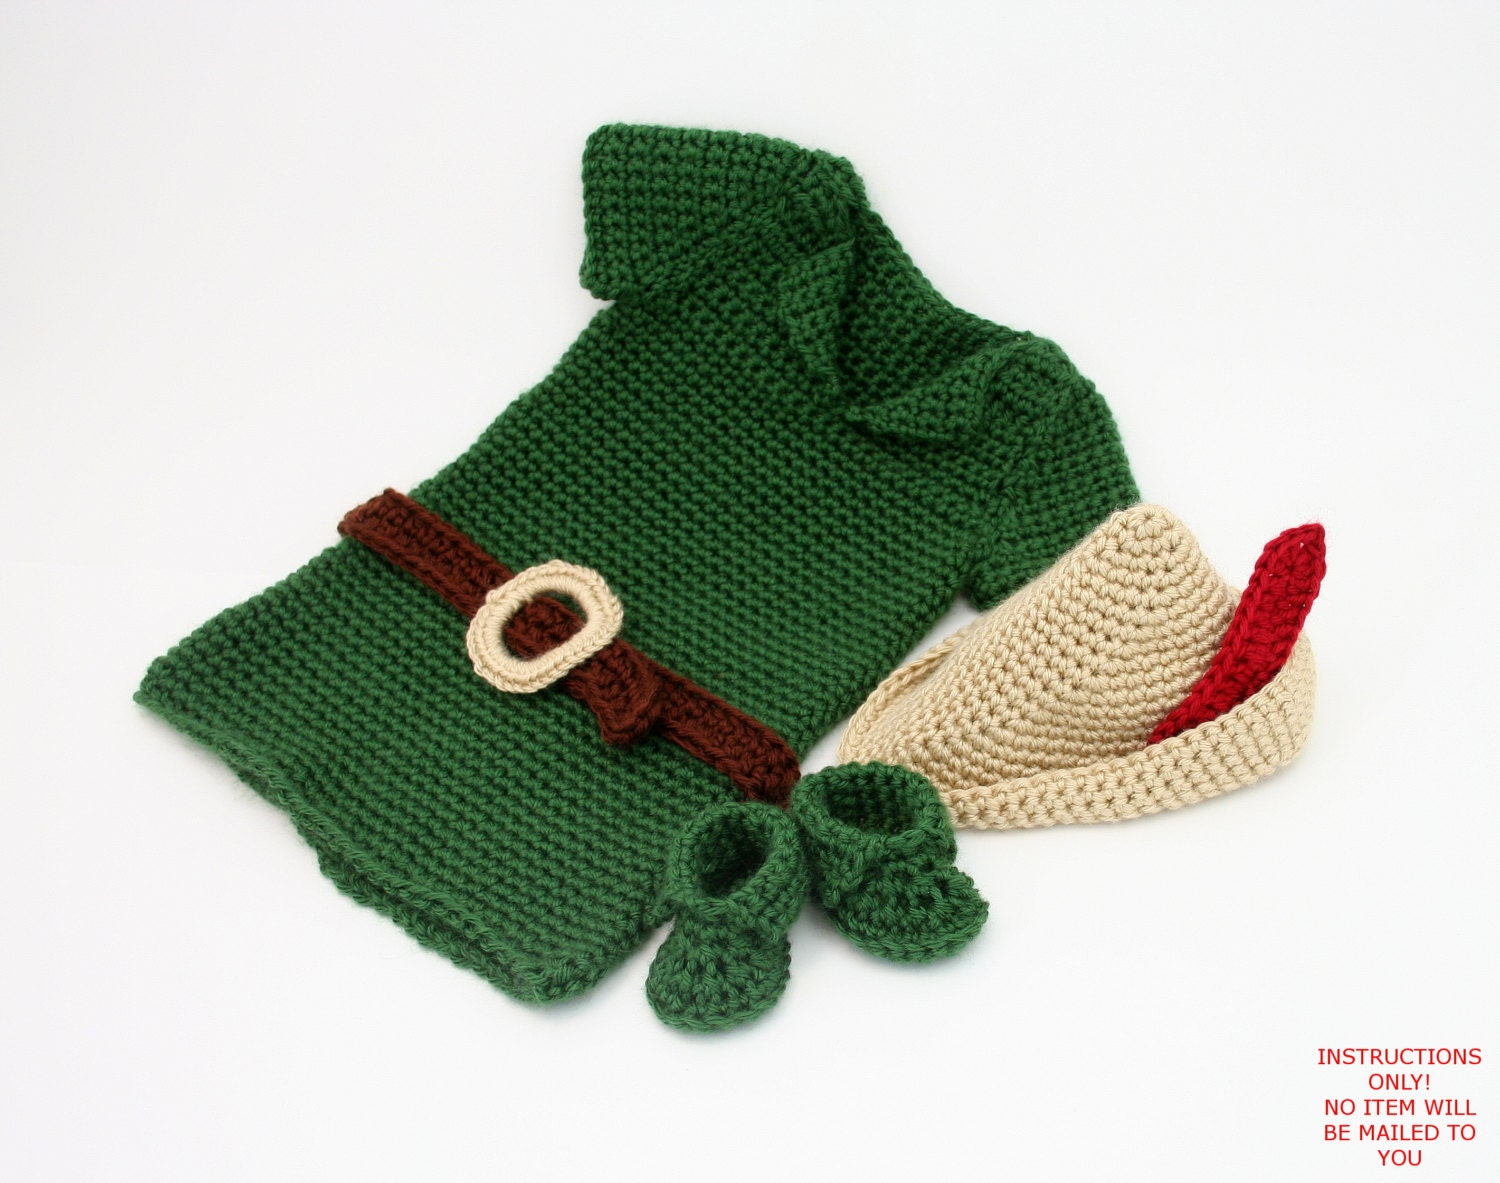 Free Crochet Patterns For Baby Animal Outfits : PDF DIGITAL PATTERN:Boy Crochet OutfitBaby Robin Hood Costume